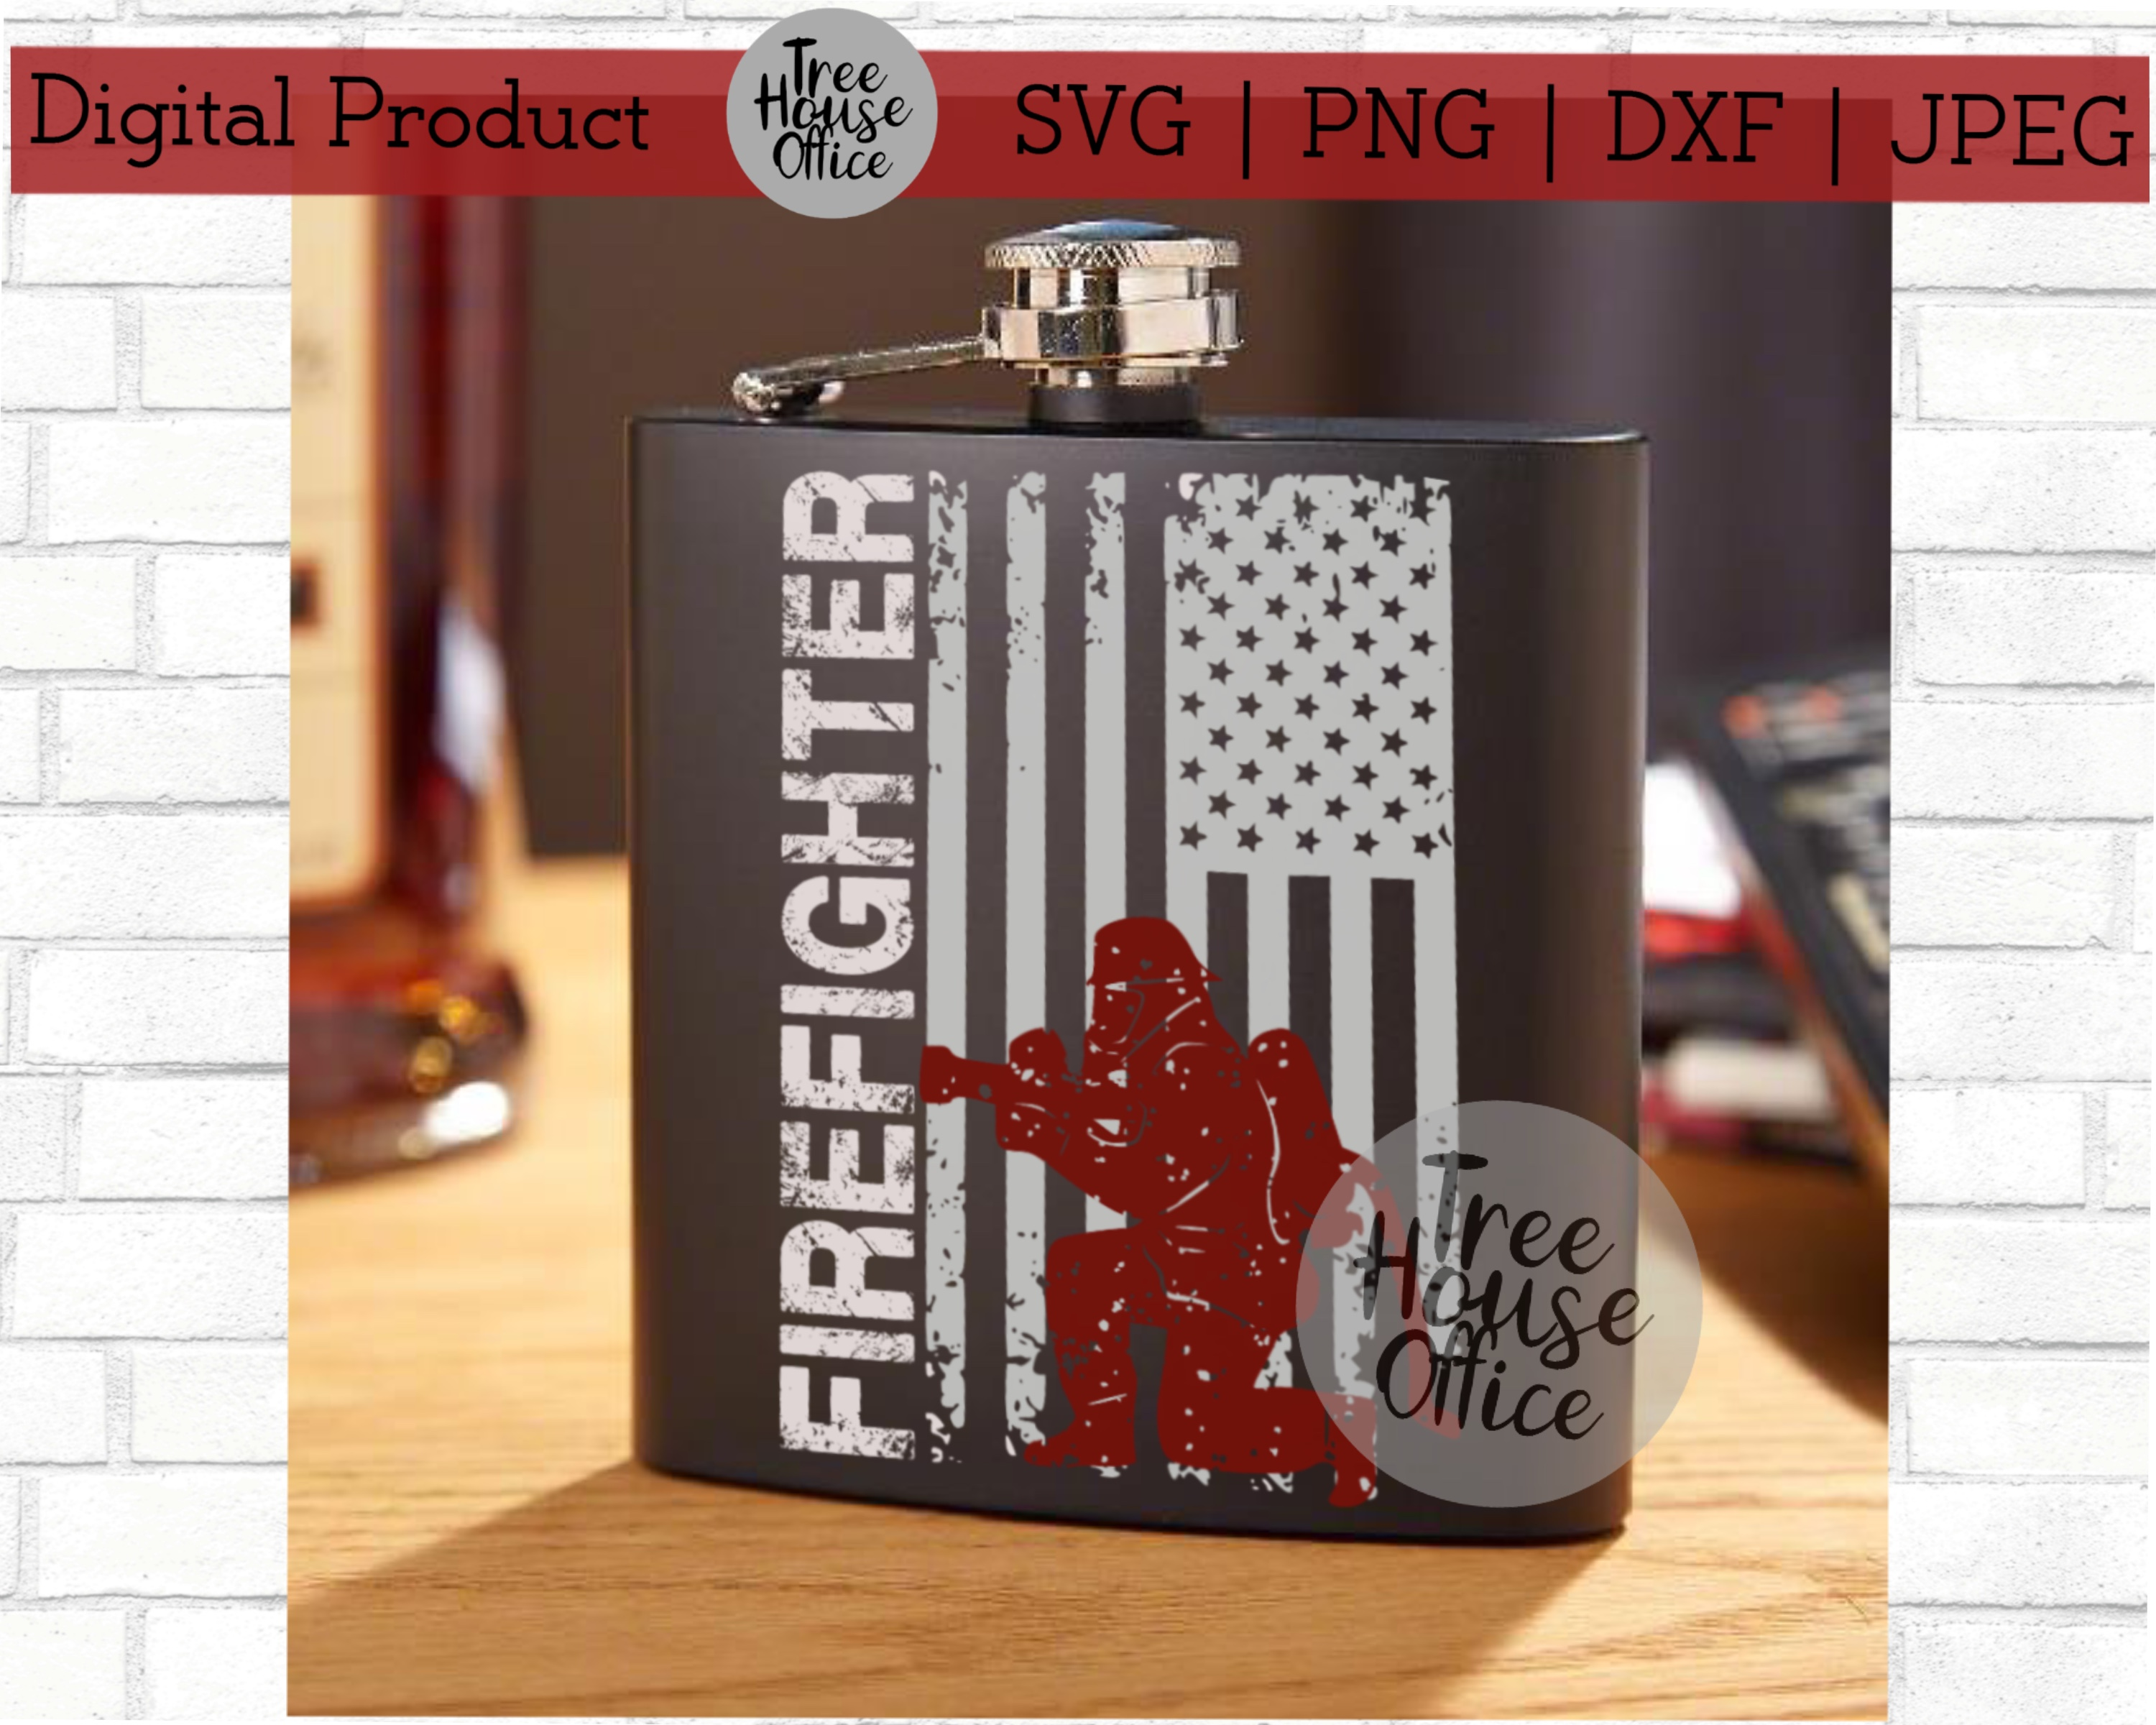 Firefighter Flag Thin Red Line SVG DXF PNG JPEG example image 3